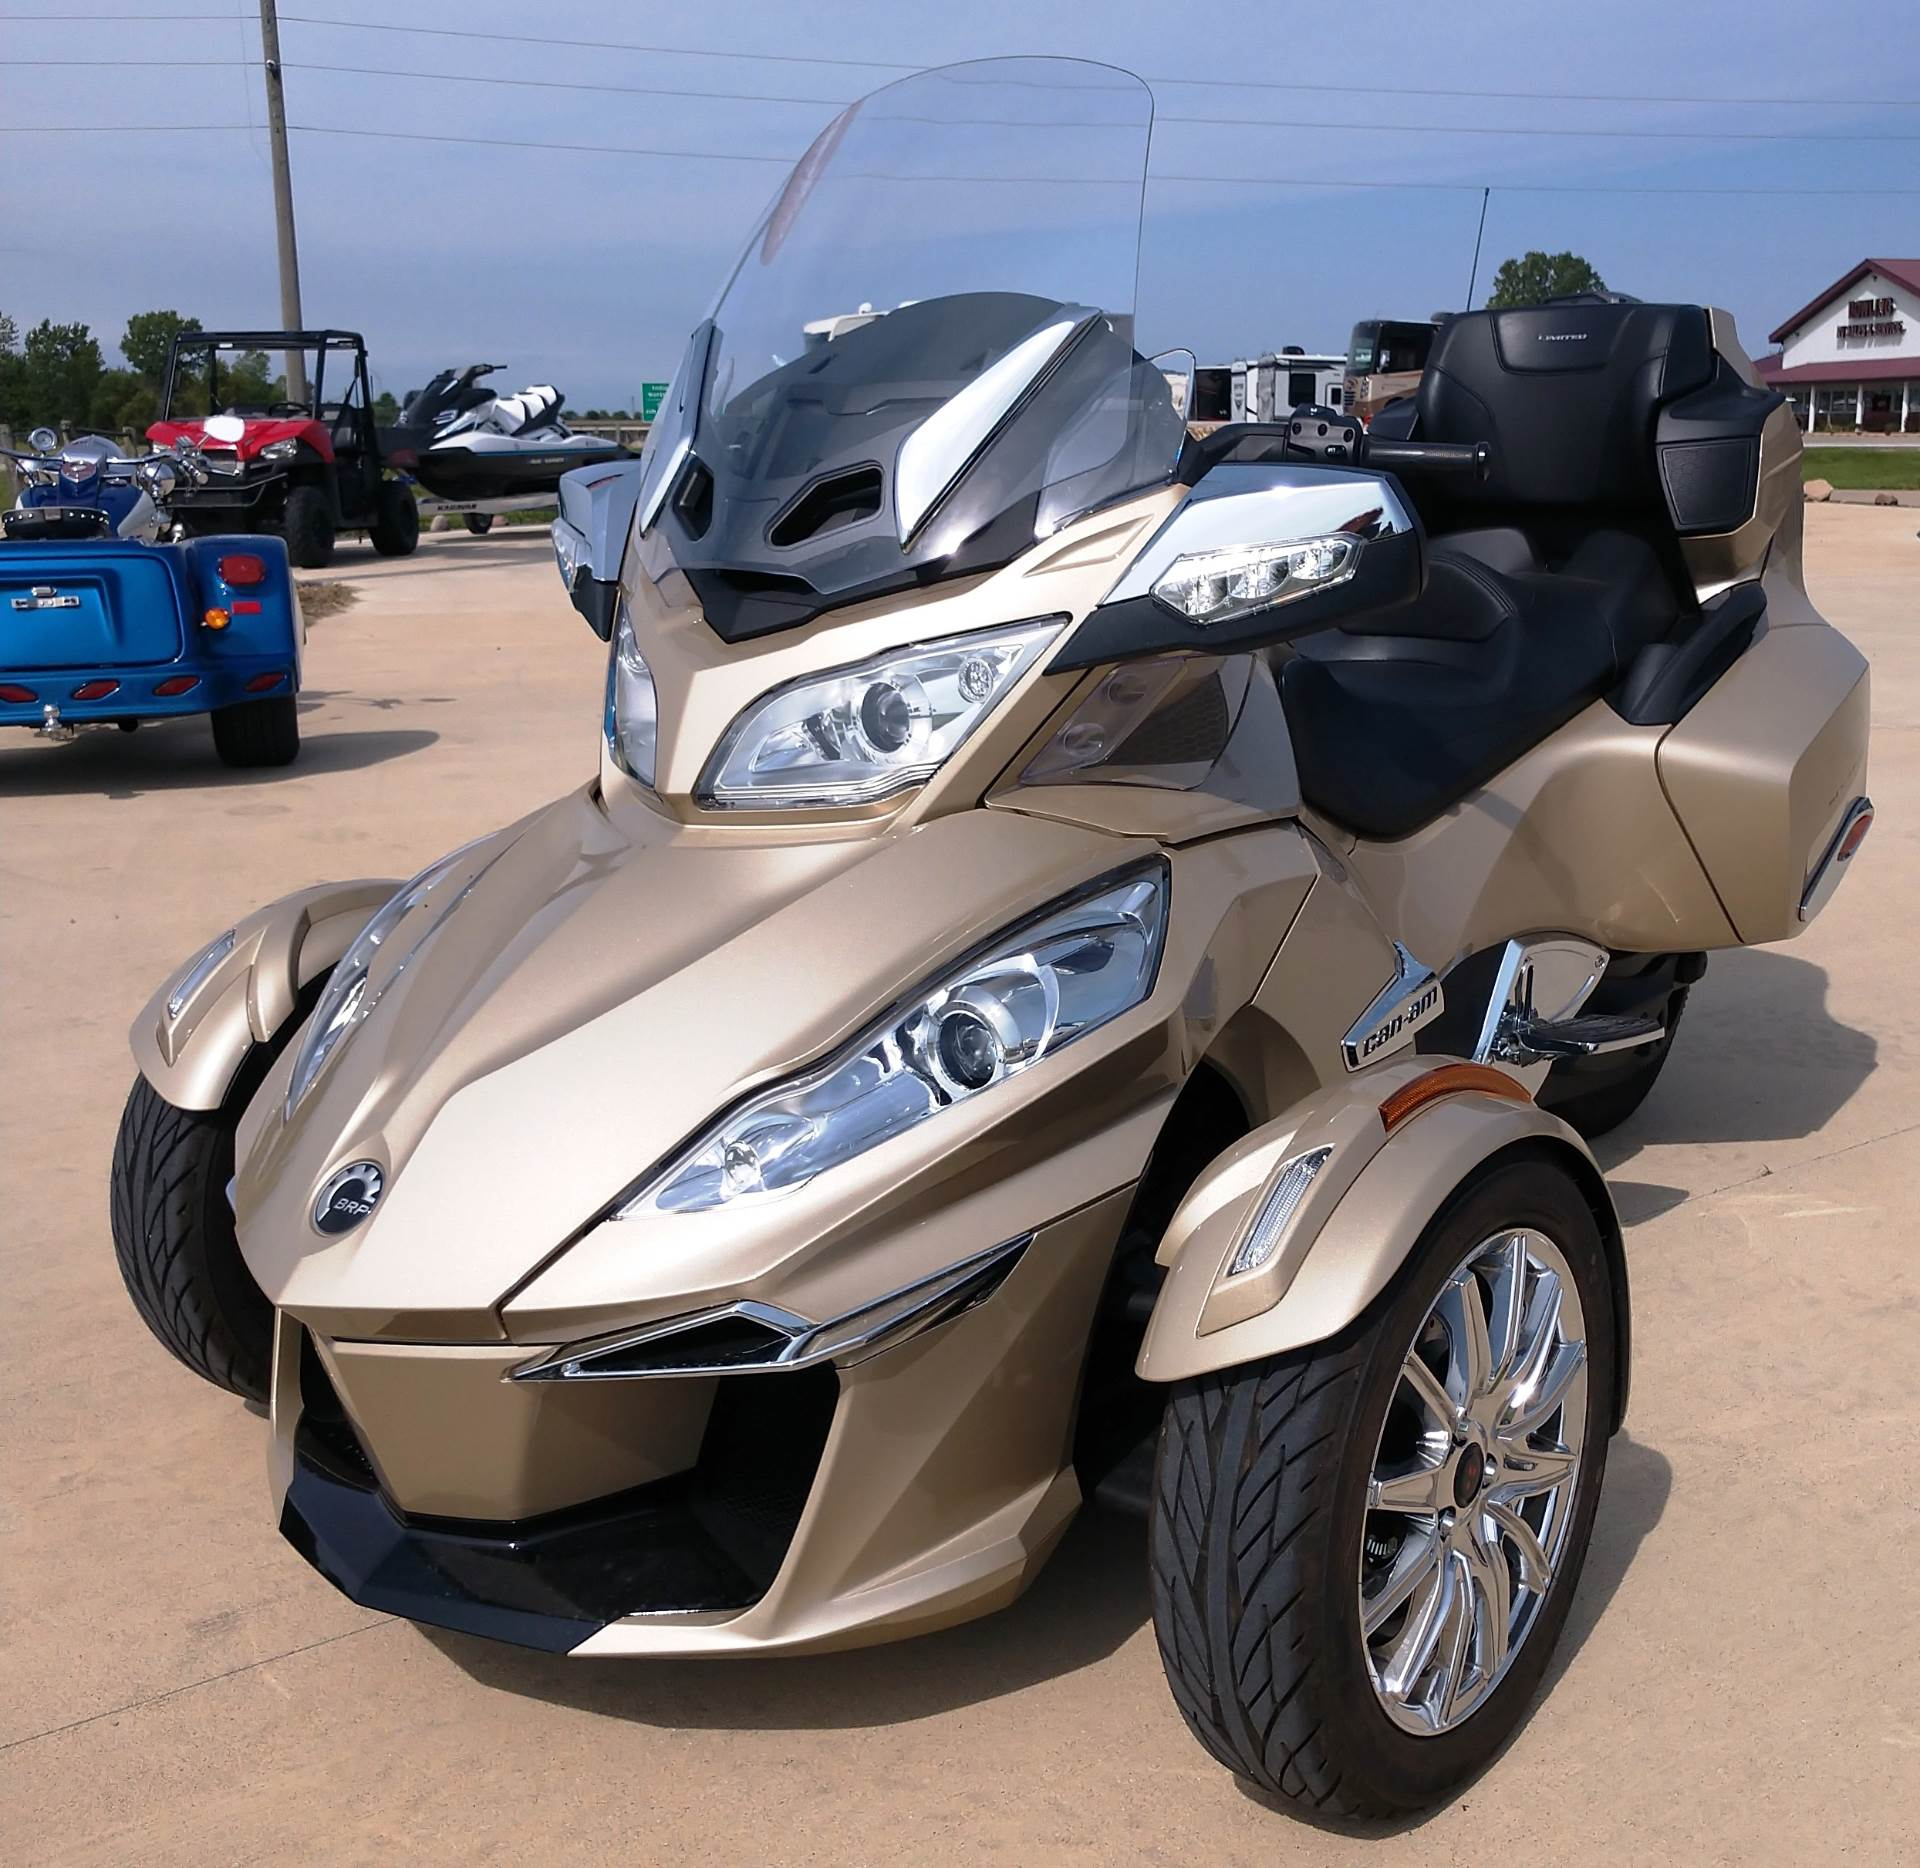 2017 Can-Am™ Spyder RT Limited 3